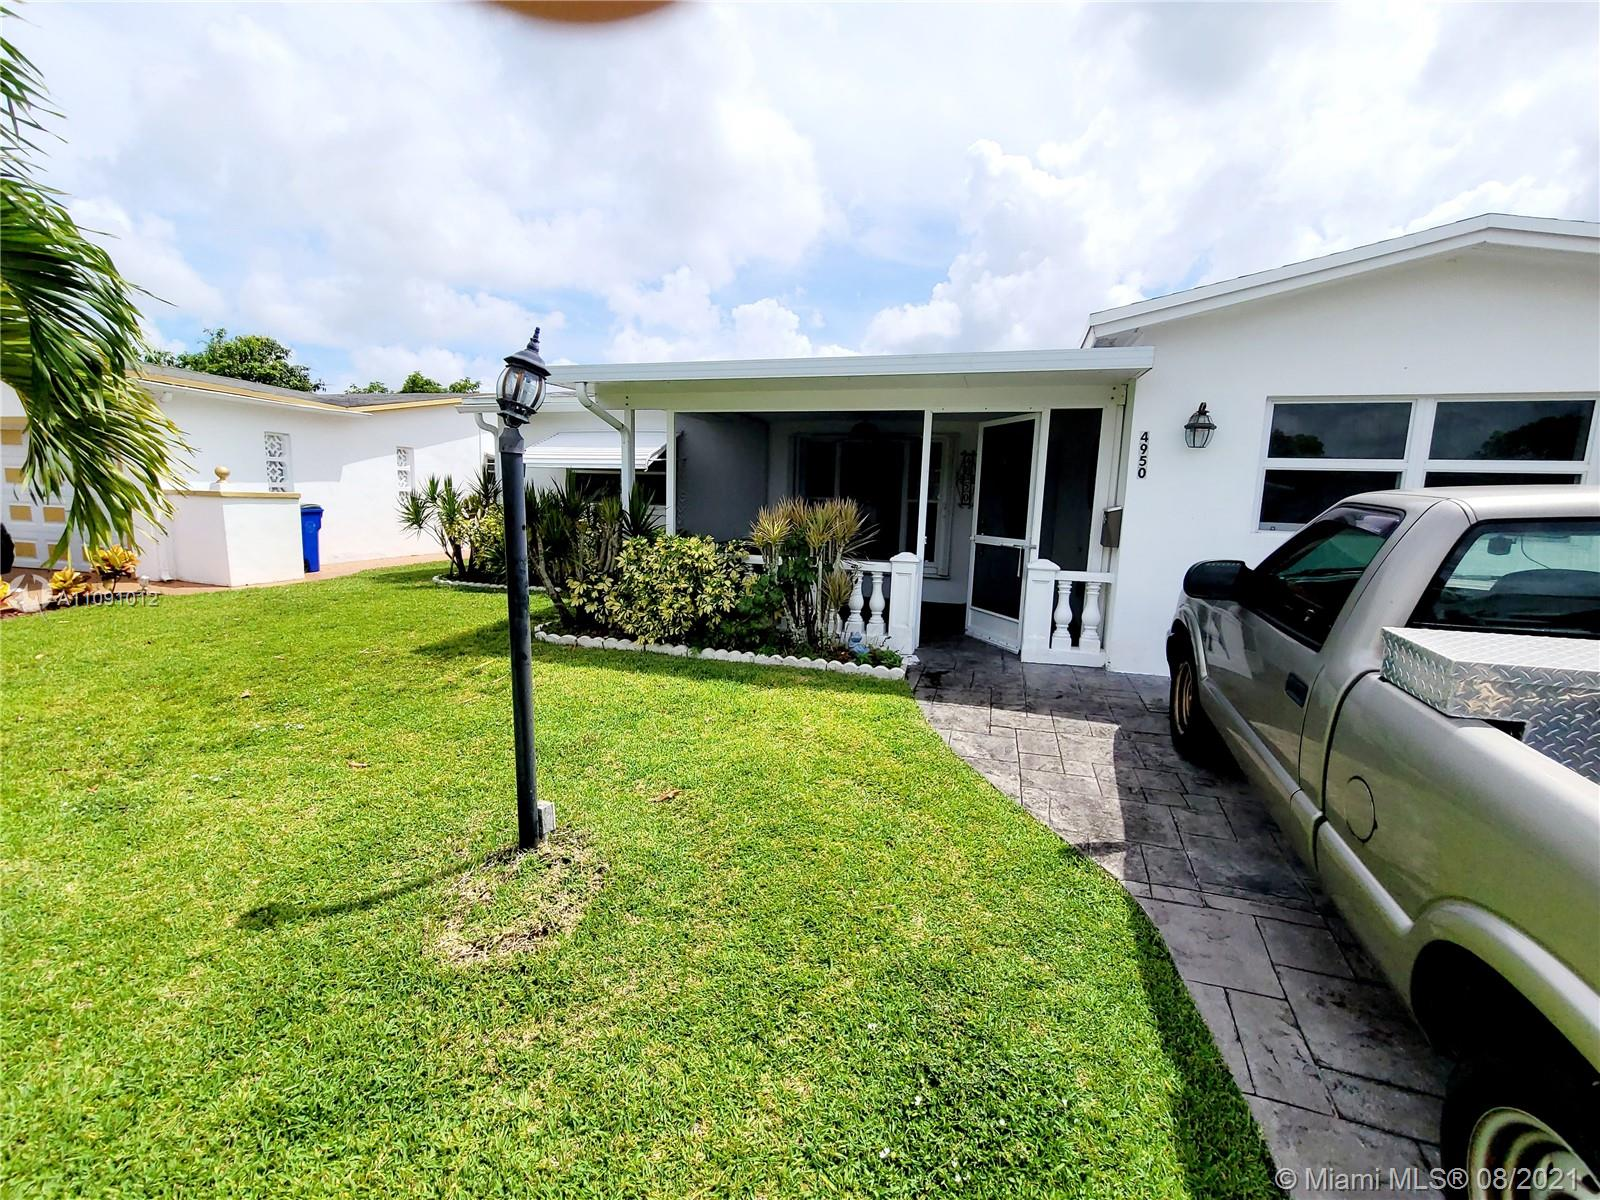 4950 NW 42nd St, Lauderdale Lakes, Florida 33319